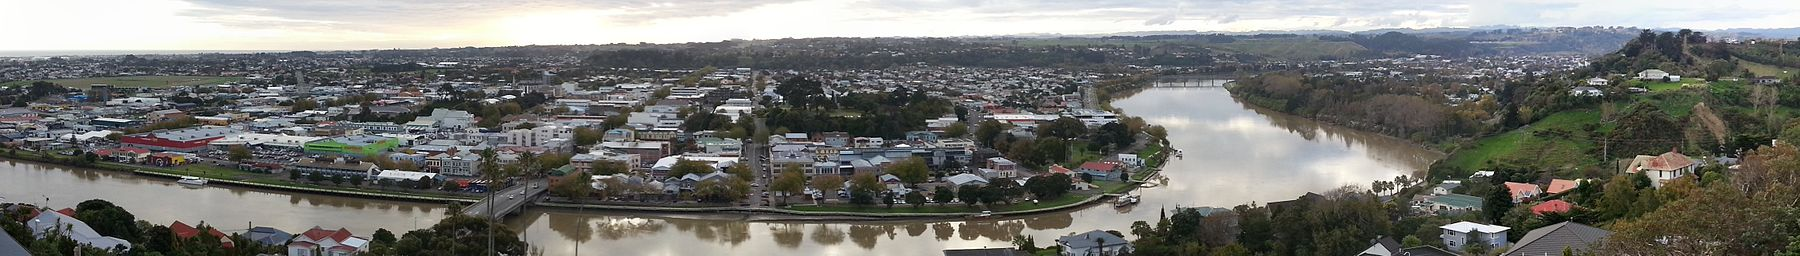 Wanganui Panorama from Durie Hill Tower - Cropped for Wikivoyage.jpg